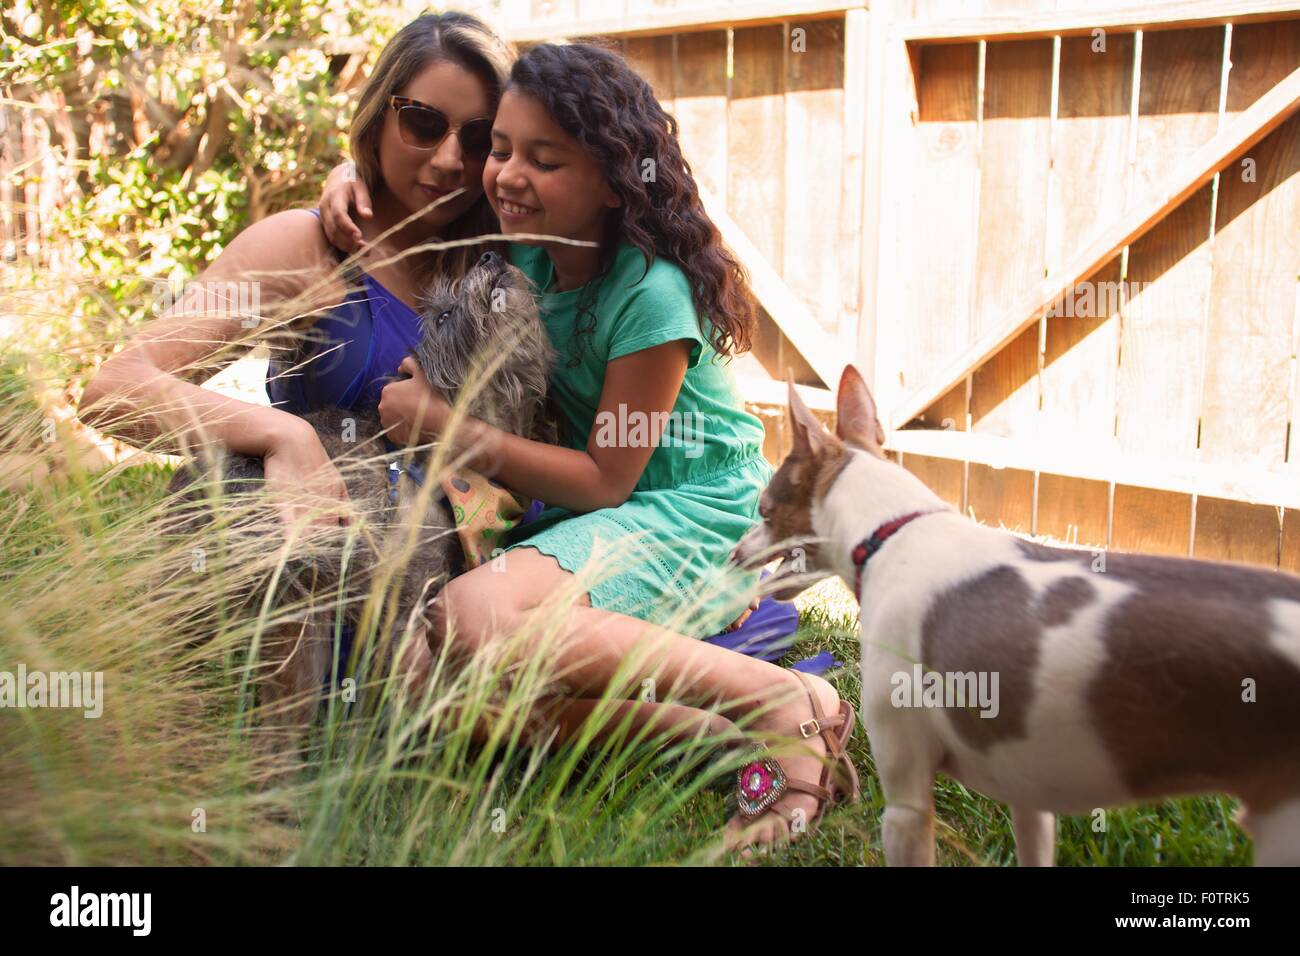 Girl and mother petting dogs in garden - Stock Image